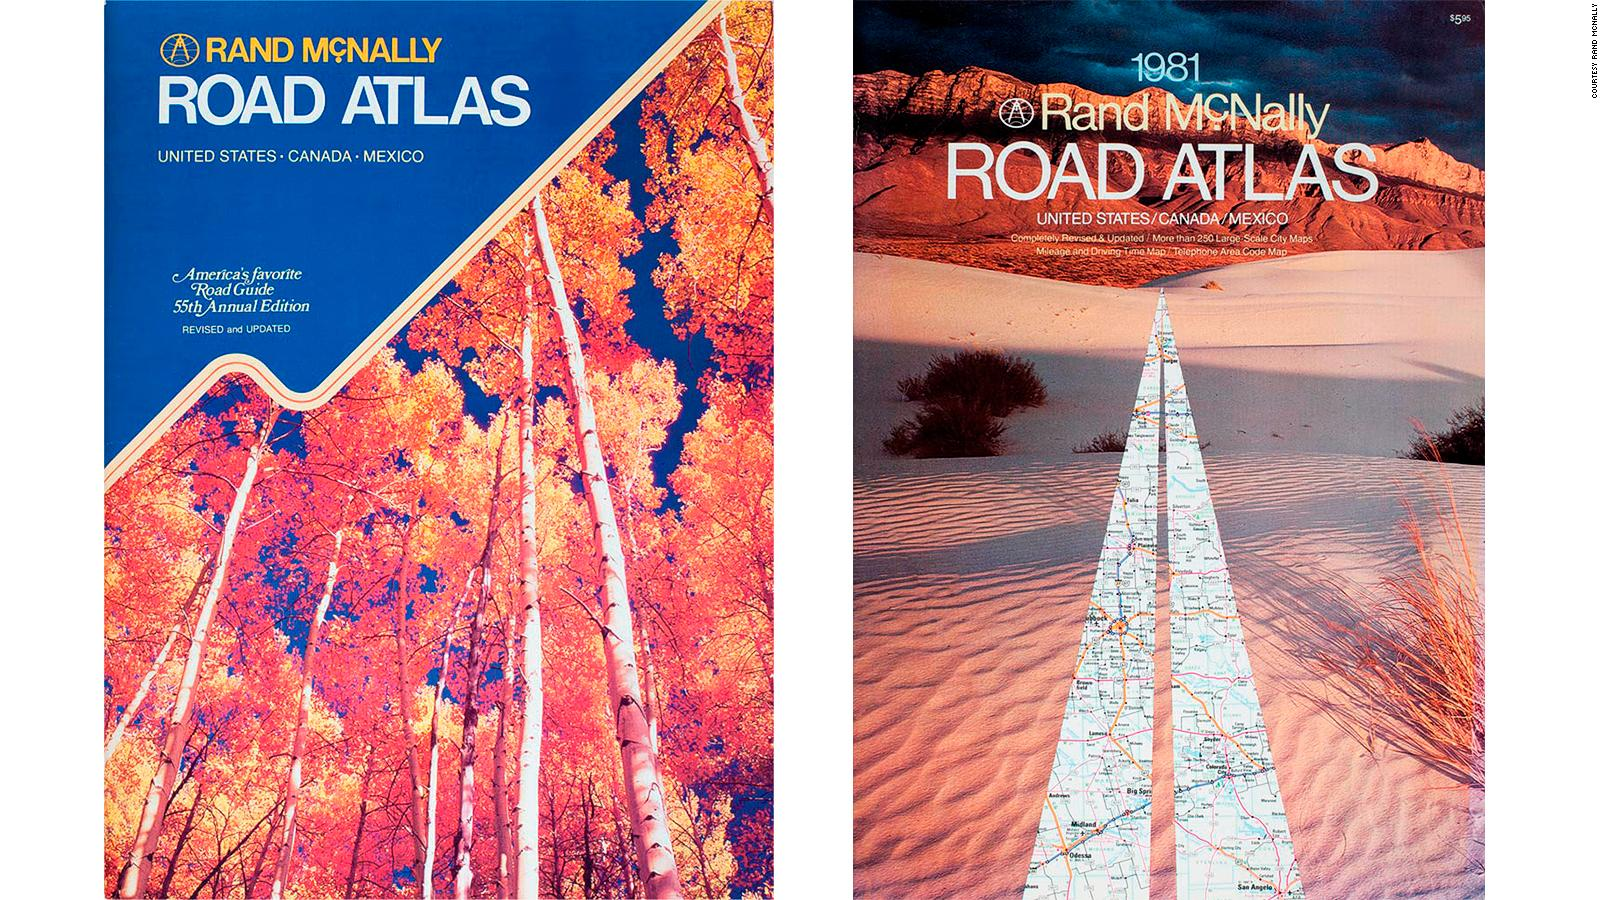 Rand McNally vintage atlases map the great American road trip | CNN ...